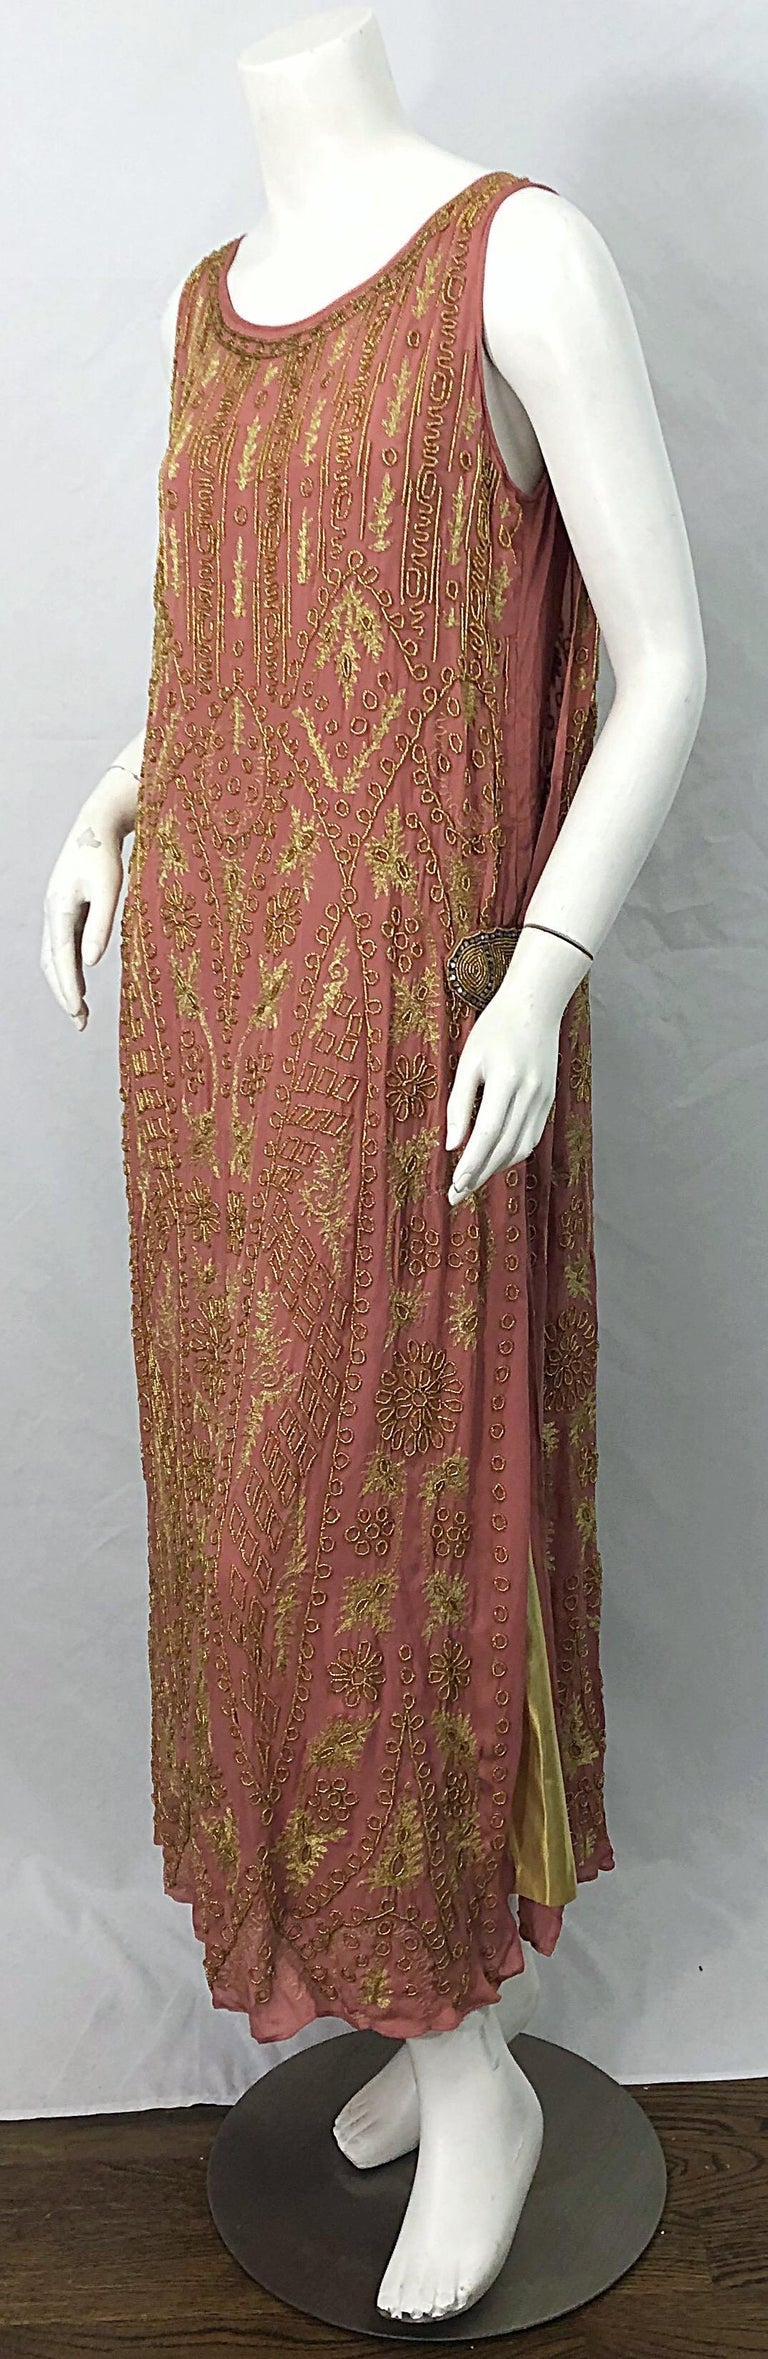 1920s French Couture Pink + Gold Beaded Gatsby Roaring 20s Vintage Flapper Dress For Sale 6